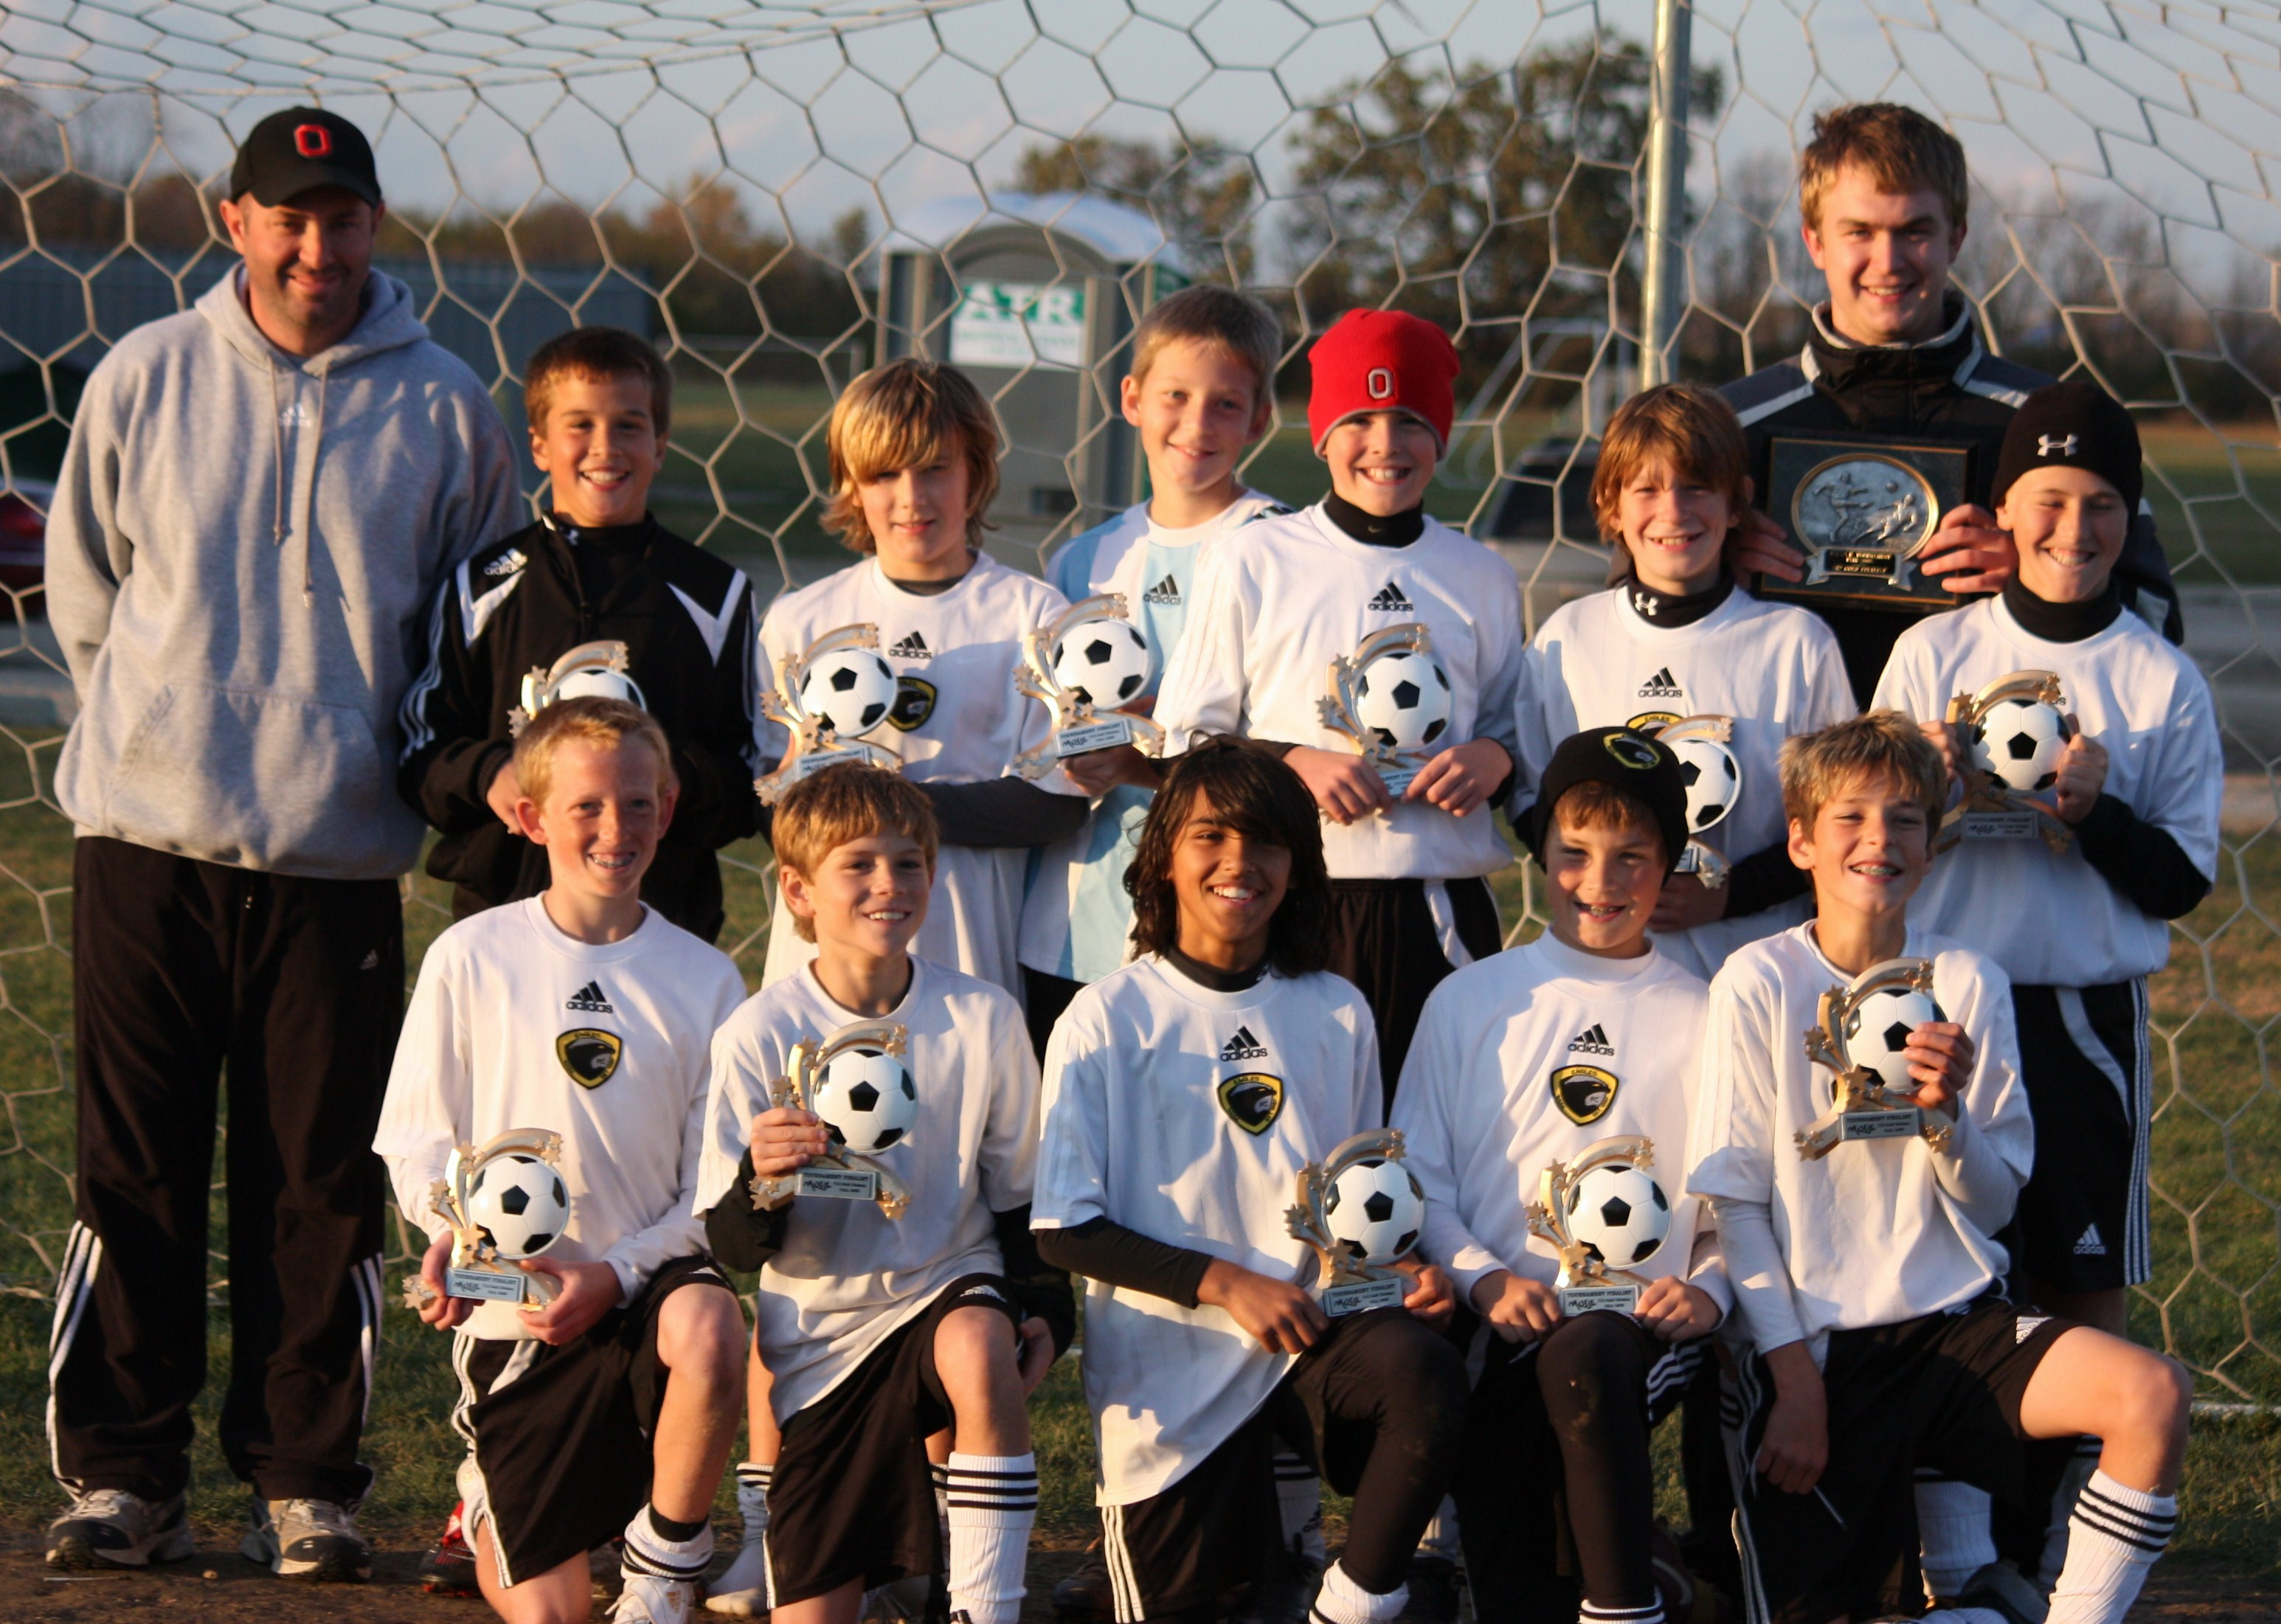 u12_boys_gold_fall08.jpg